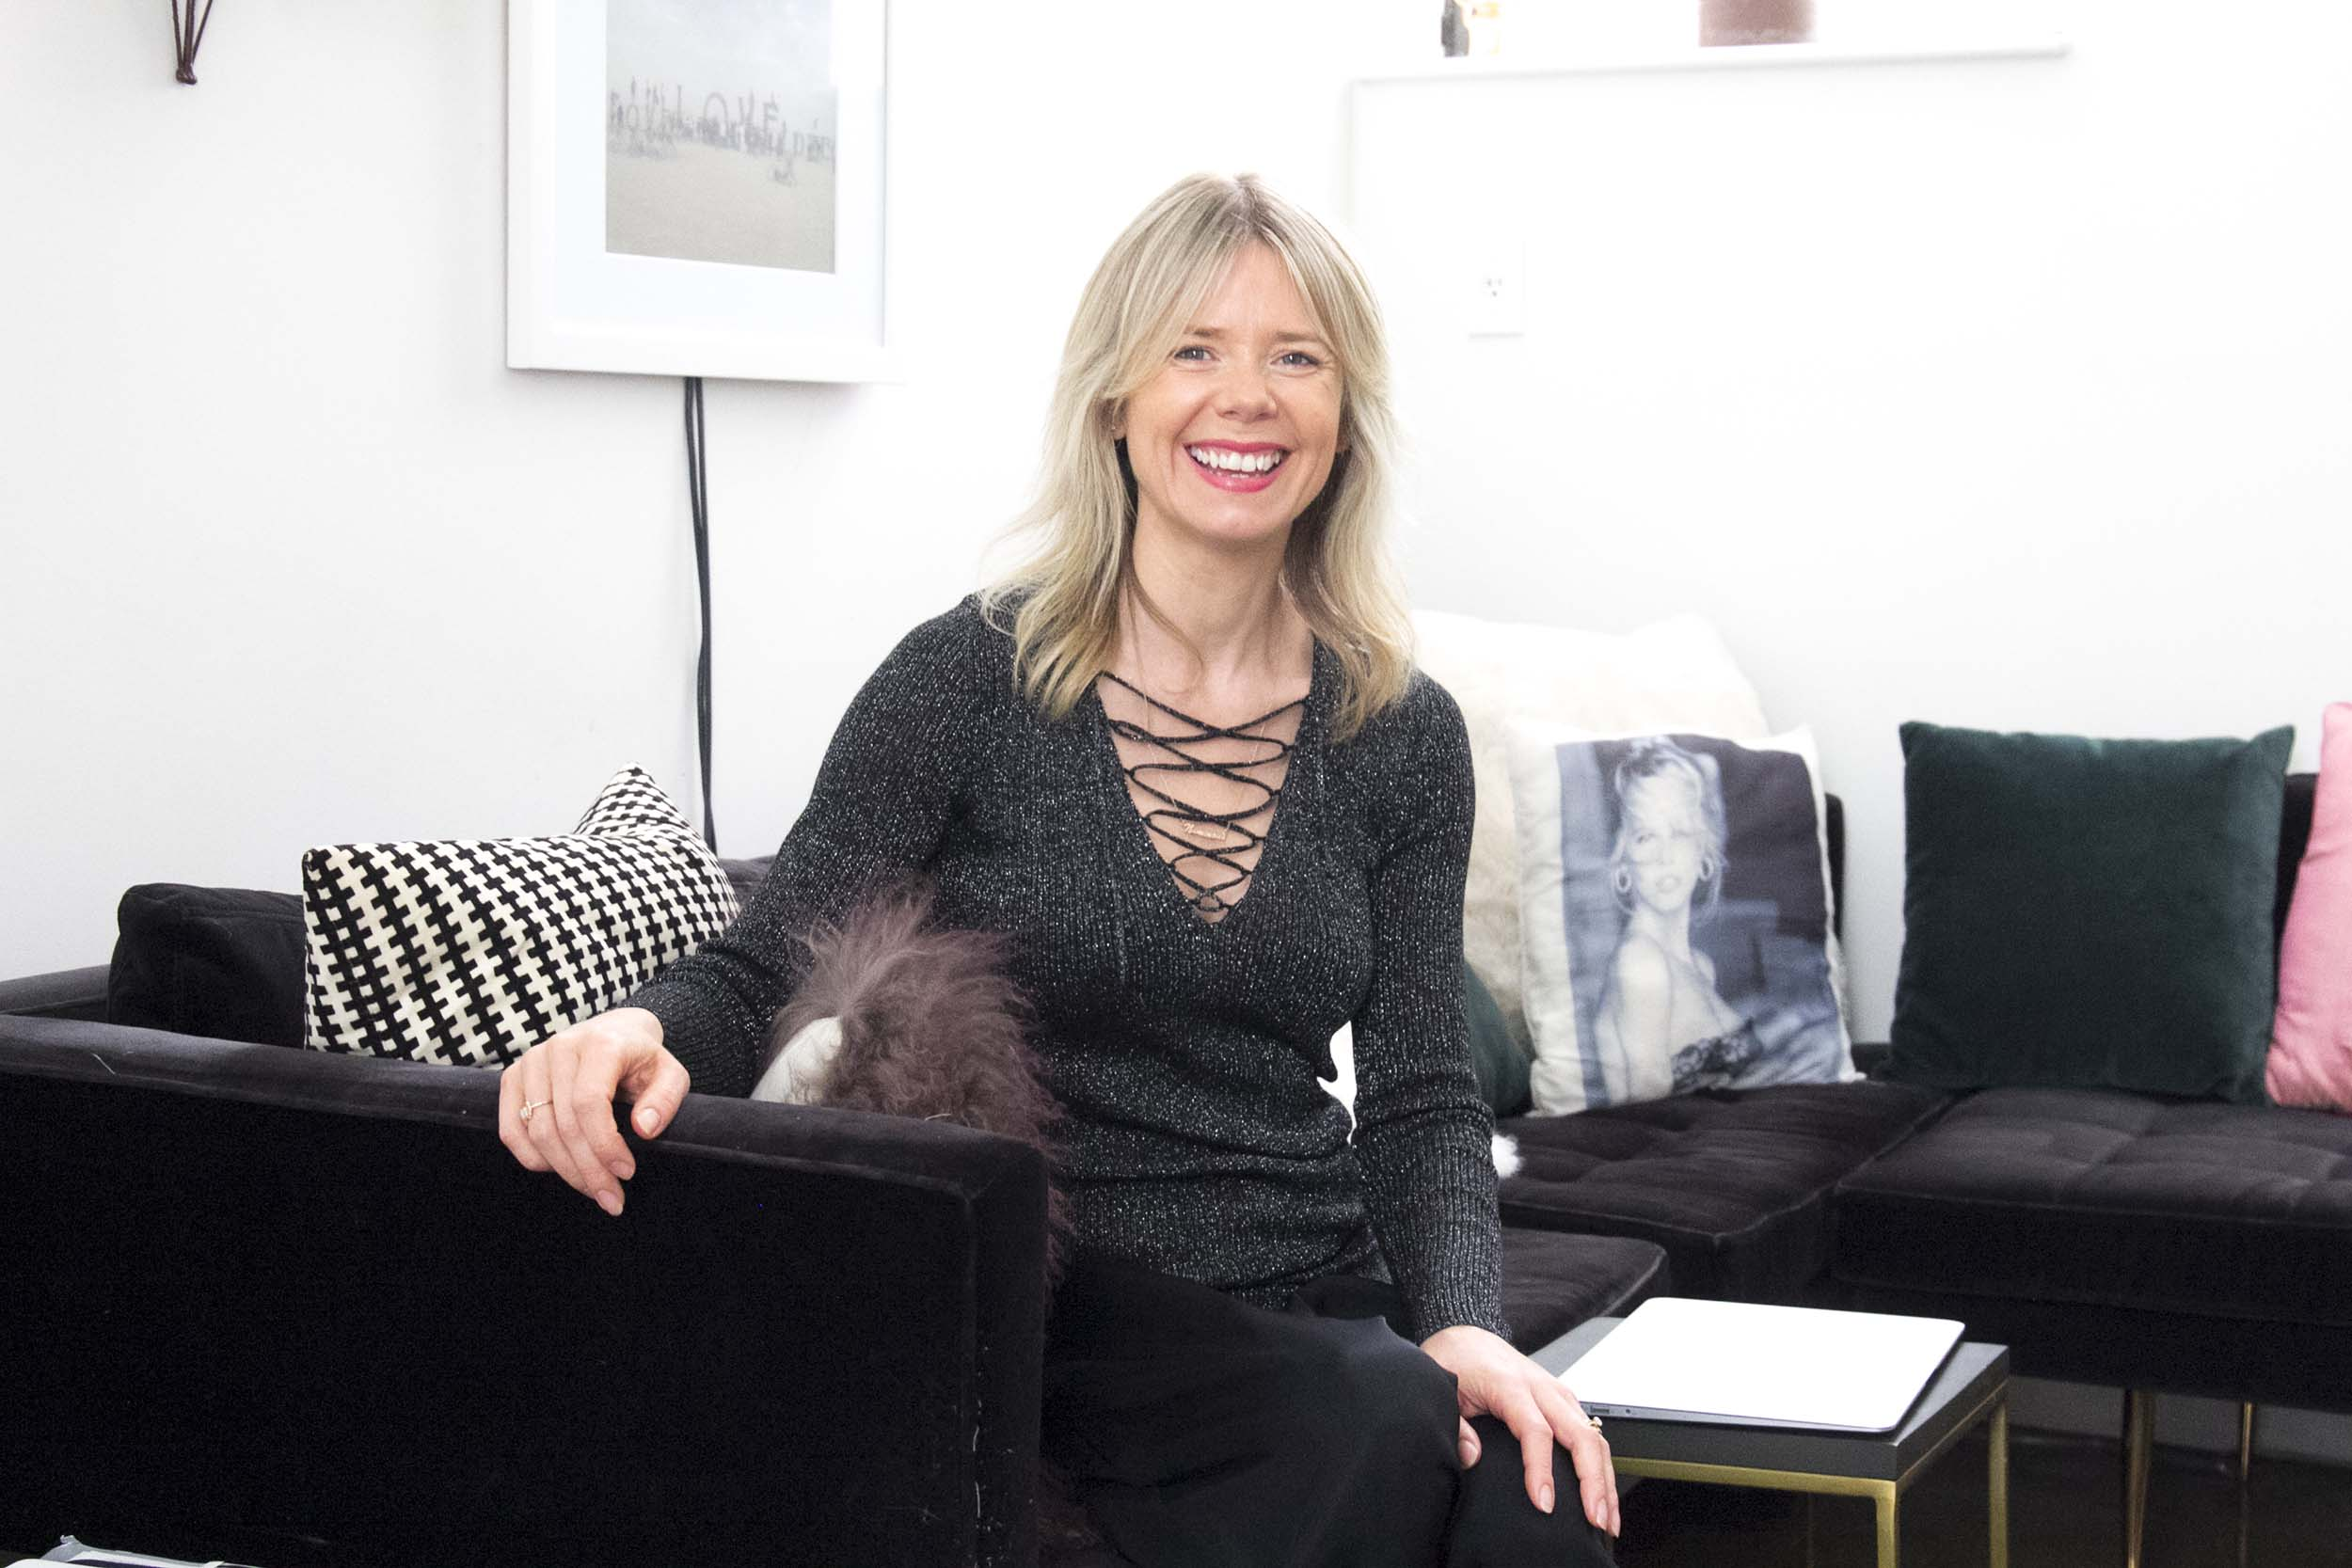 Ruby Warrington, founder of The Numinous and author of Material Girl Mystical World